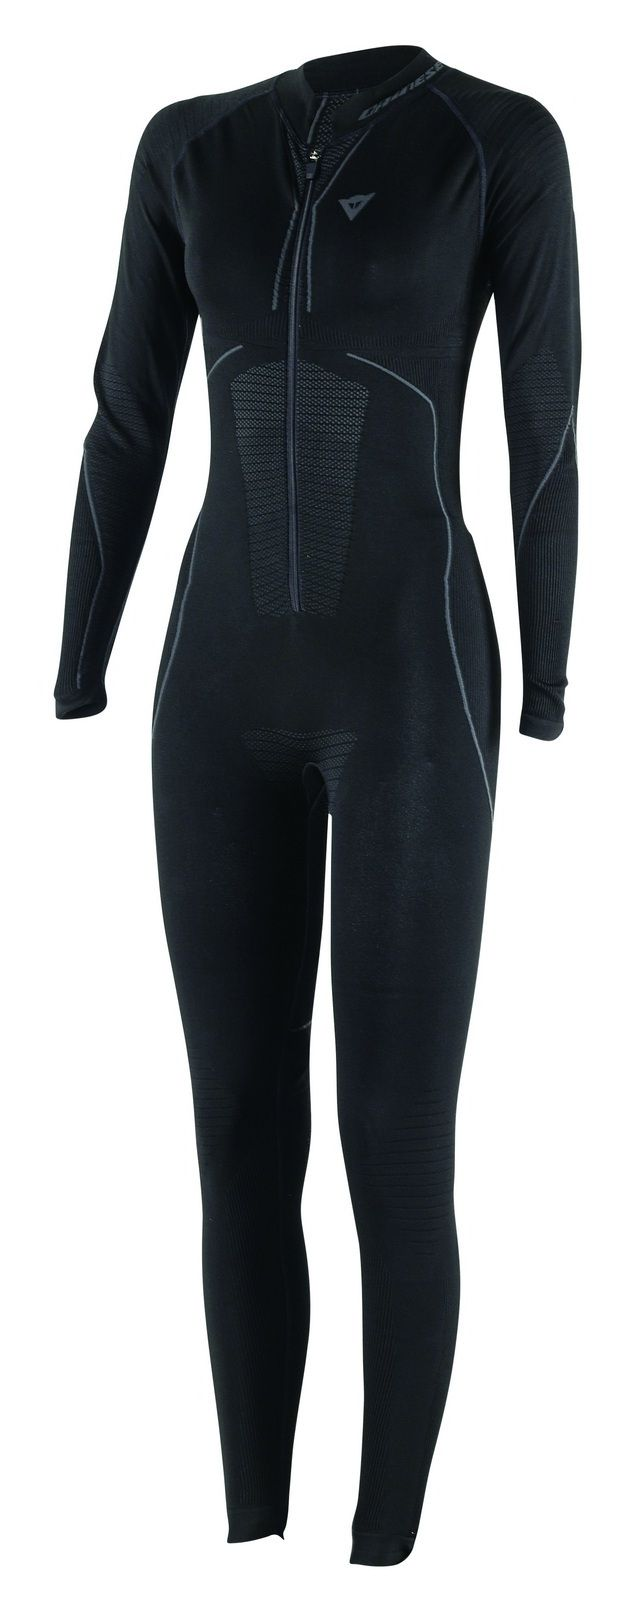 Constructed of environmentally friendly materials and without seams for year round riding comfort, the Dainese Women's D-Core Dry Suit wicks away moisture an...